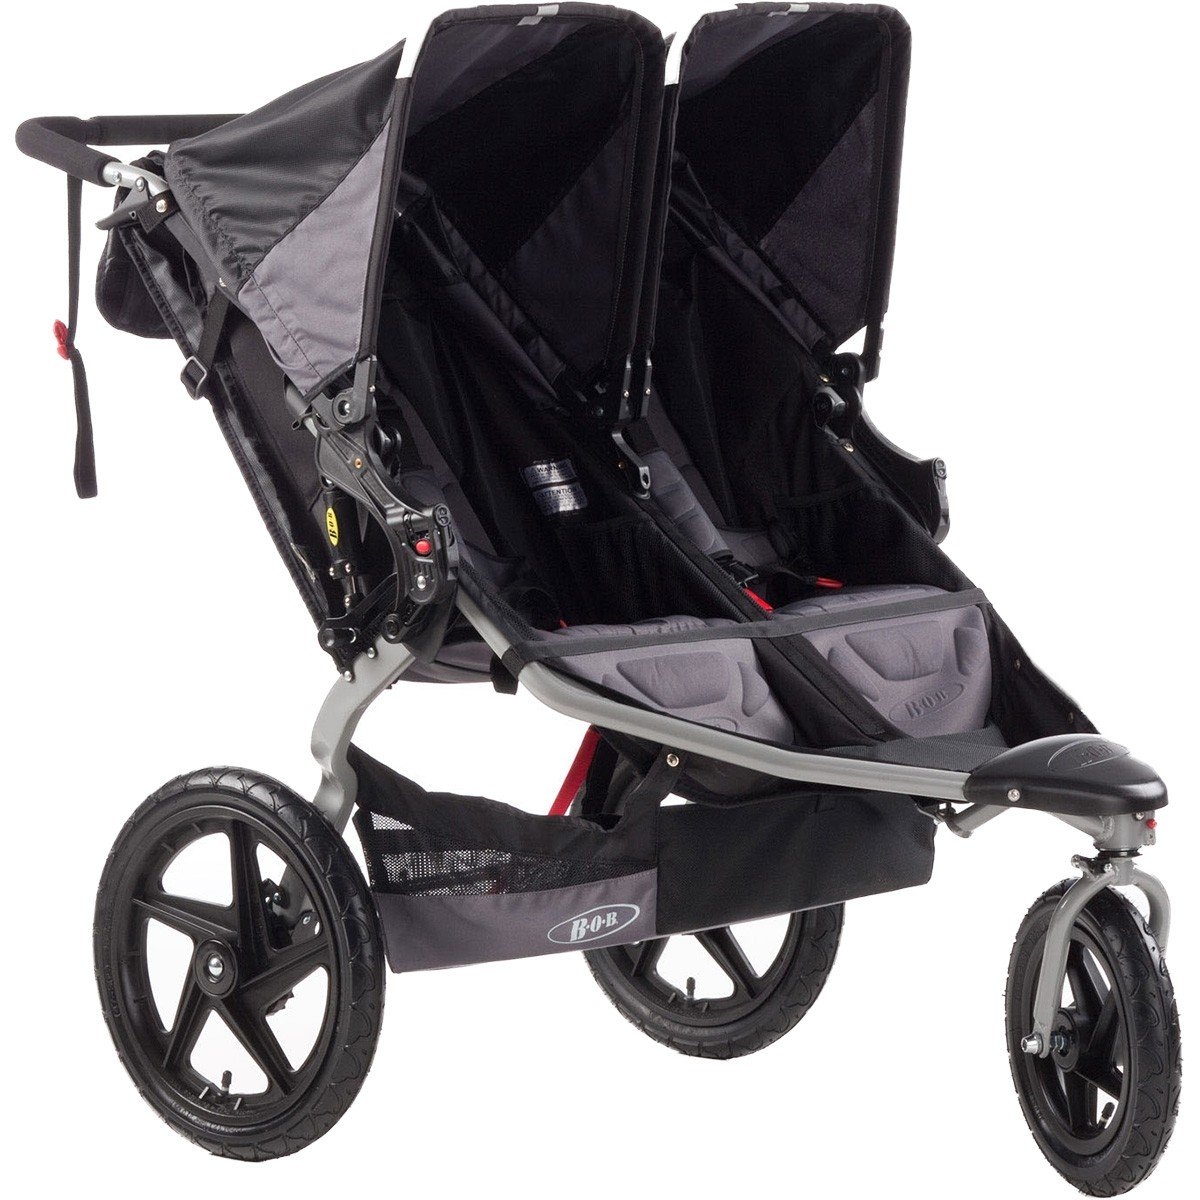 Stroller, Choosing the Best Double Stroller or Triple Stroller for Your Lifestyle